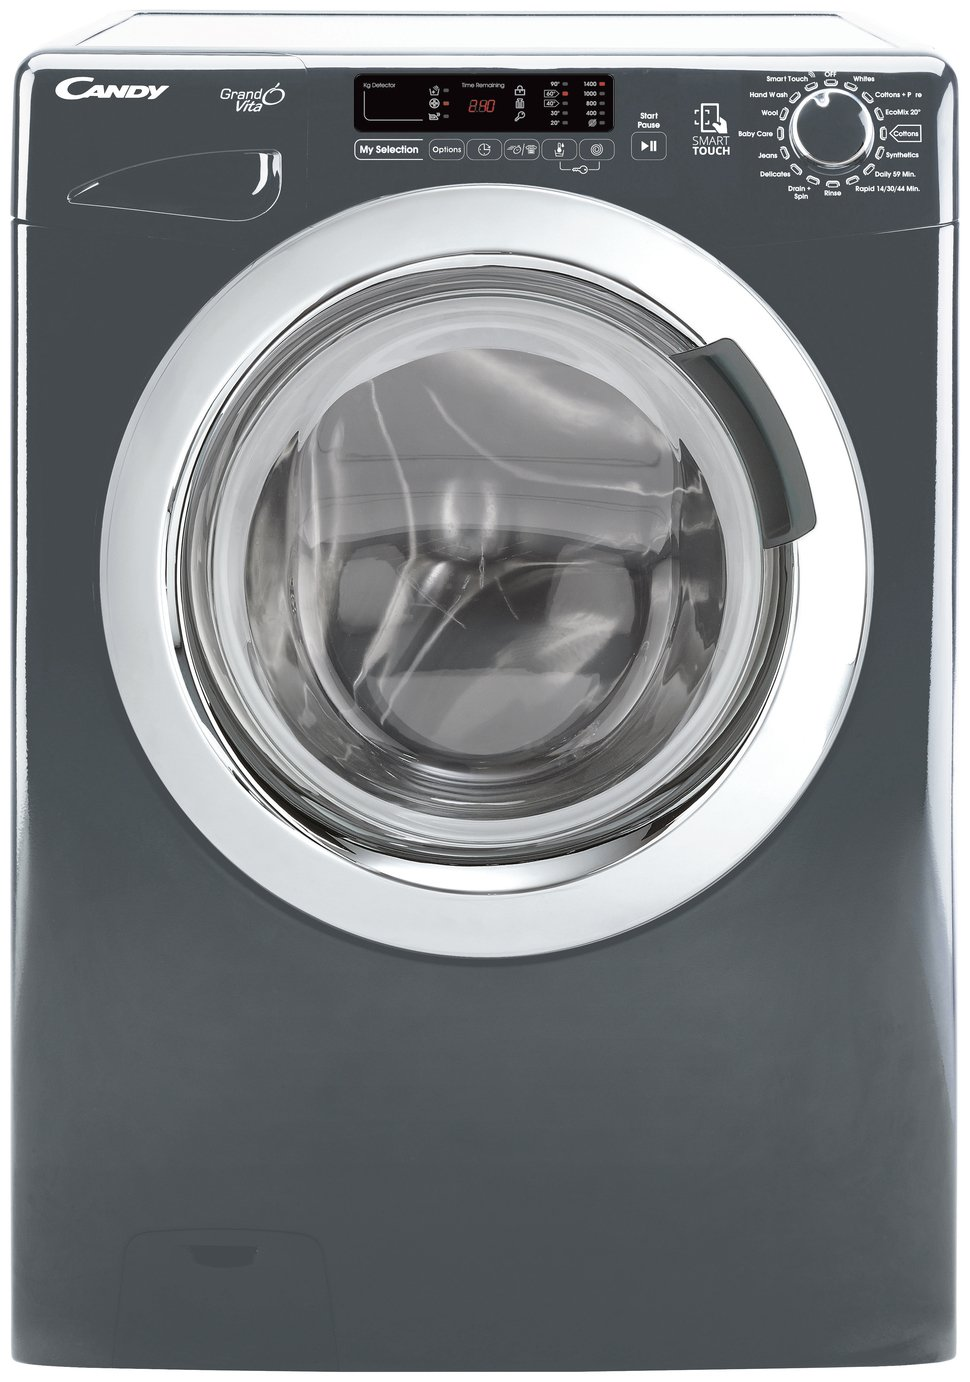 Candy GVS 148DC3R 8KG 1400 Spin Washing Machine - Graphite